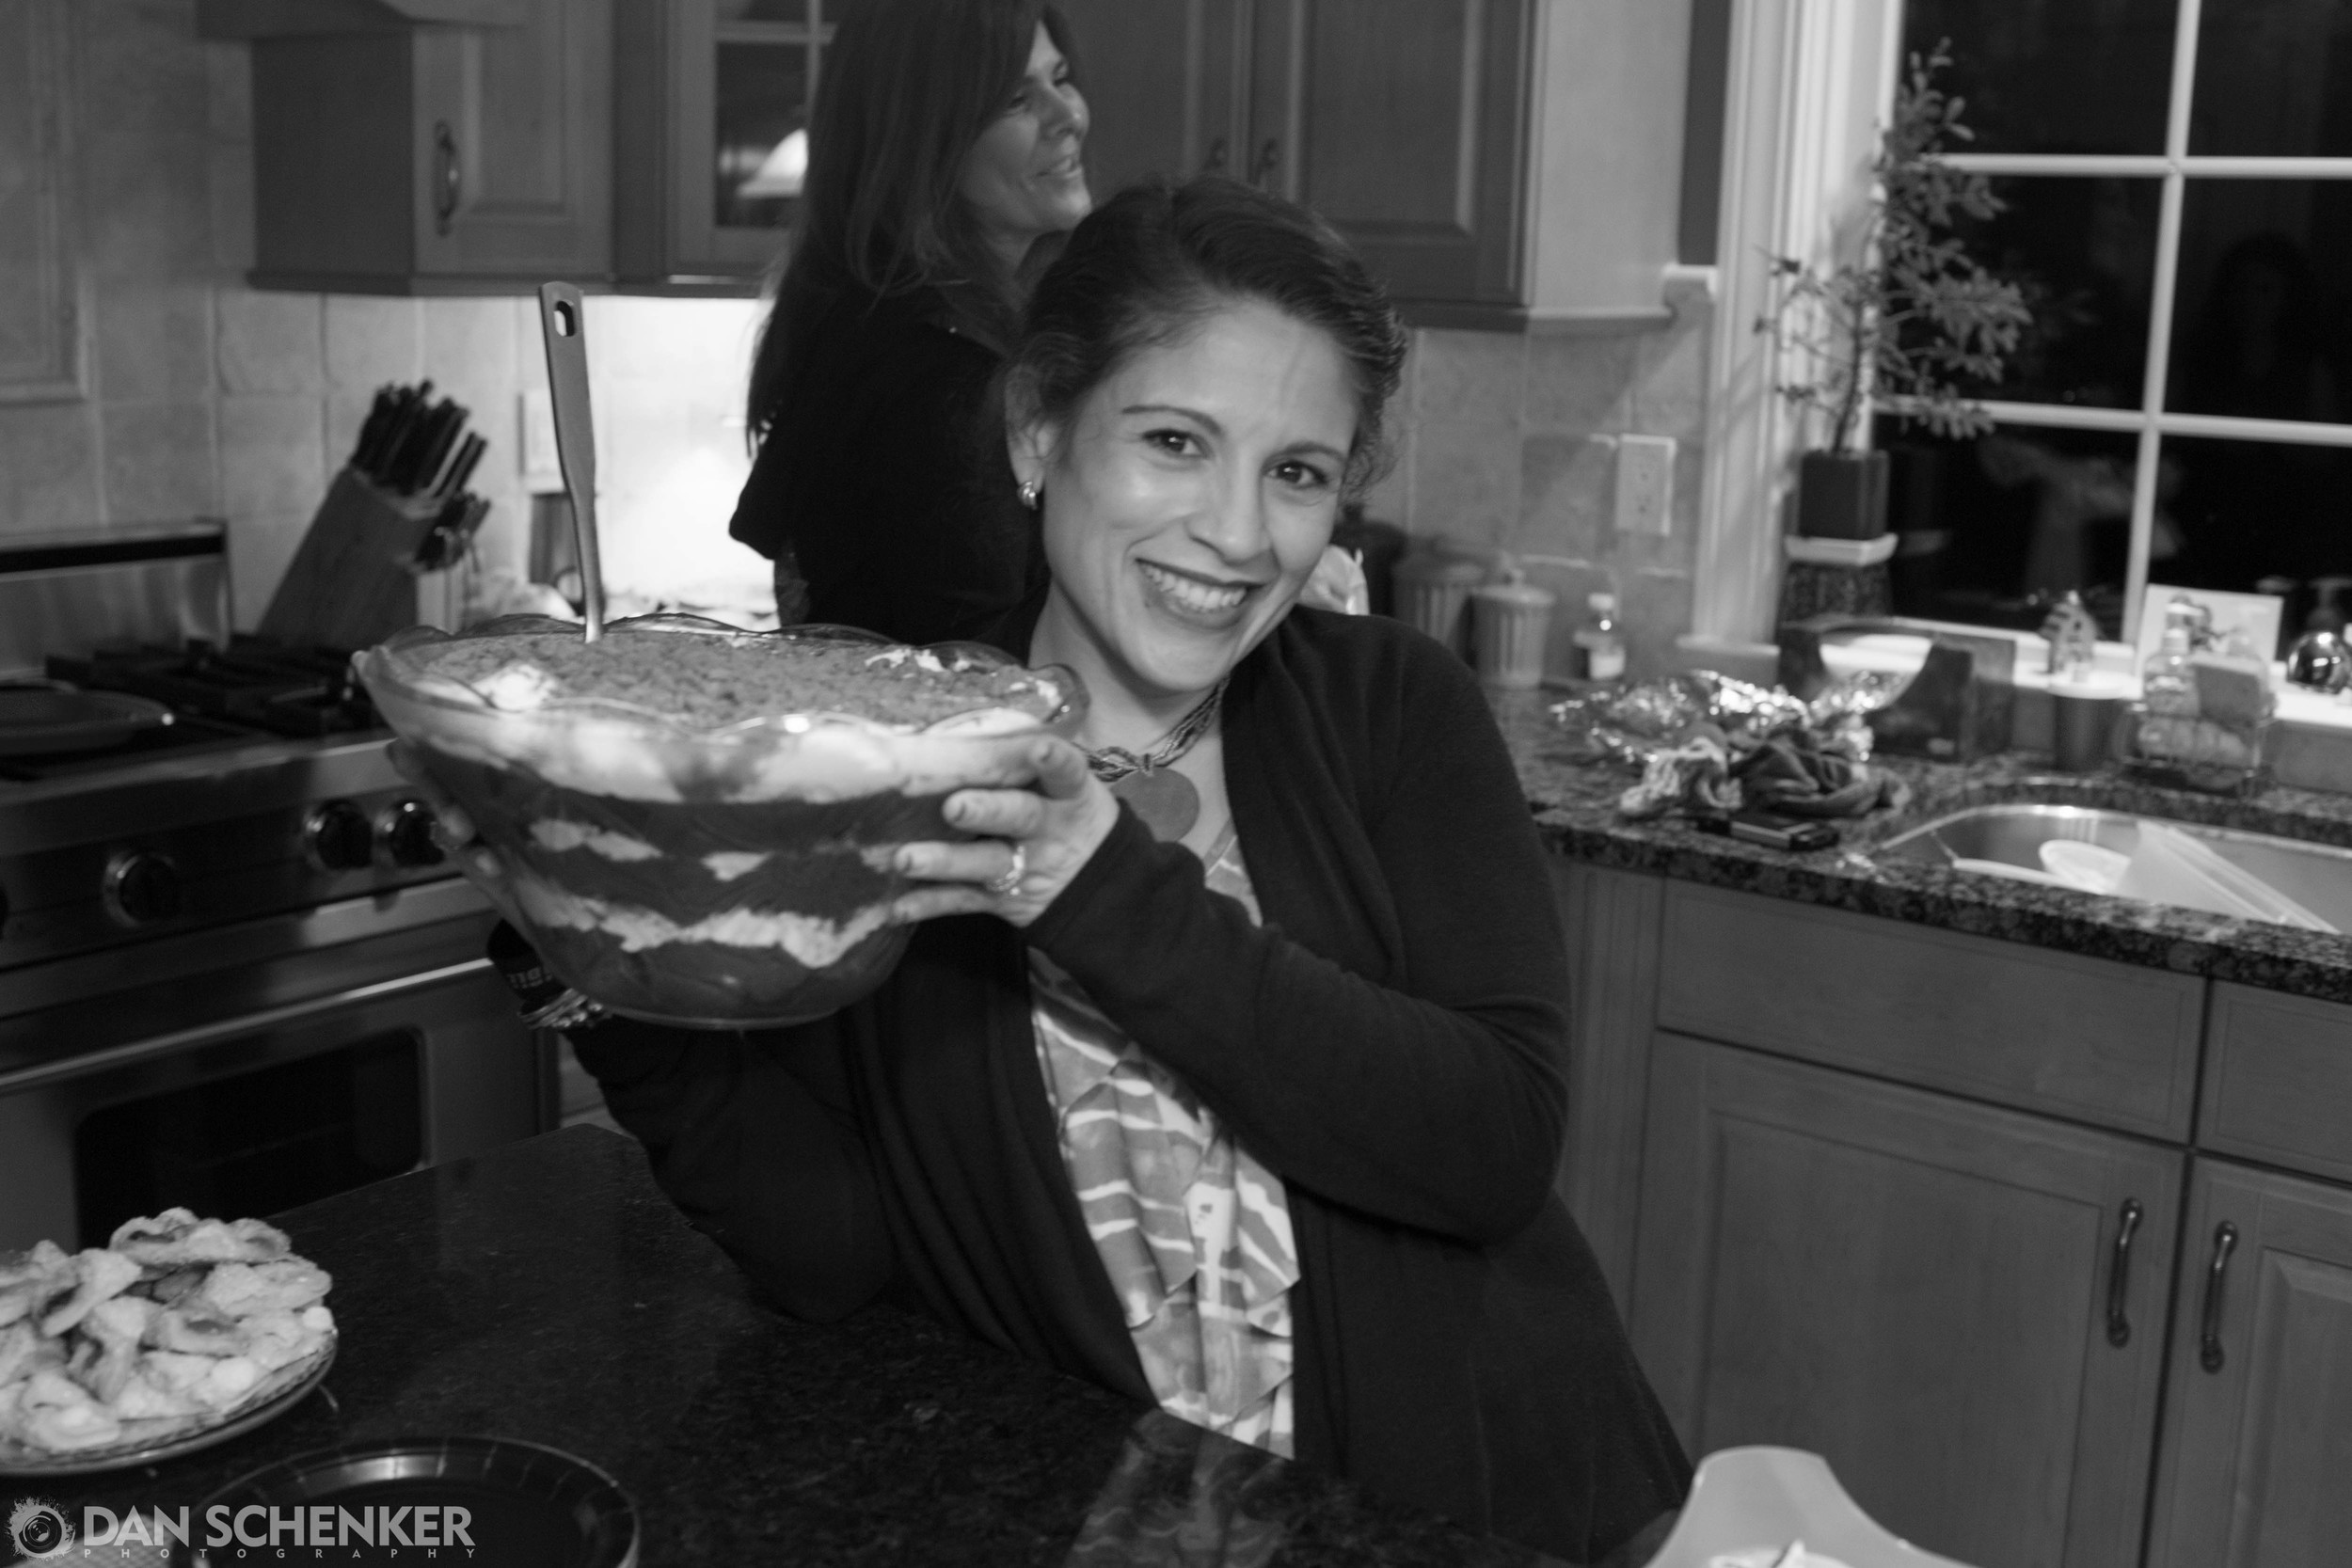 """Alicia with her now-famous """"Death by Chocolate"""" dessert. Om nom nom!"""